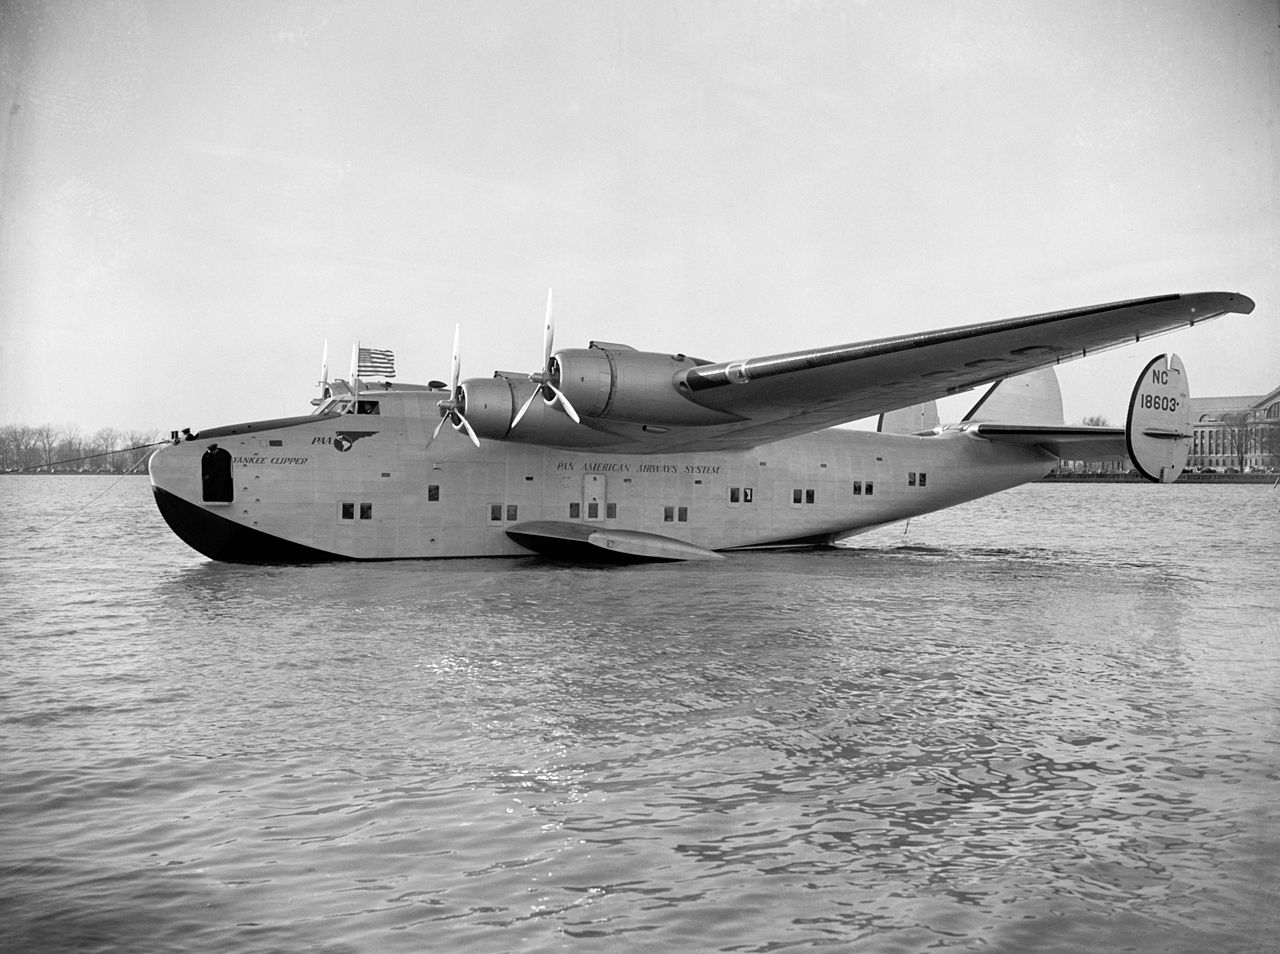 Boeing 314 Dixie Clipper que utilizó Roosevelt para vuelos intercontinentales US Air Force